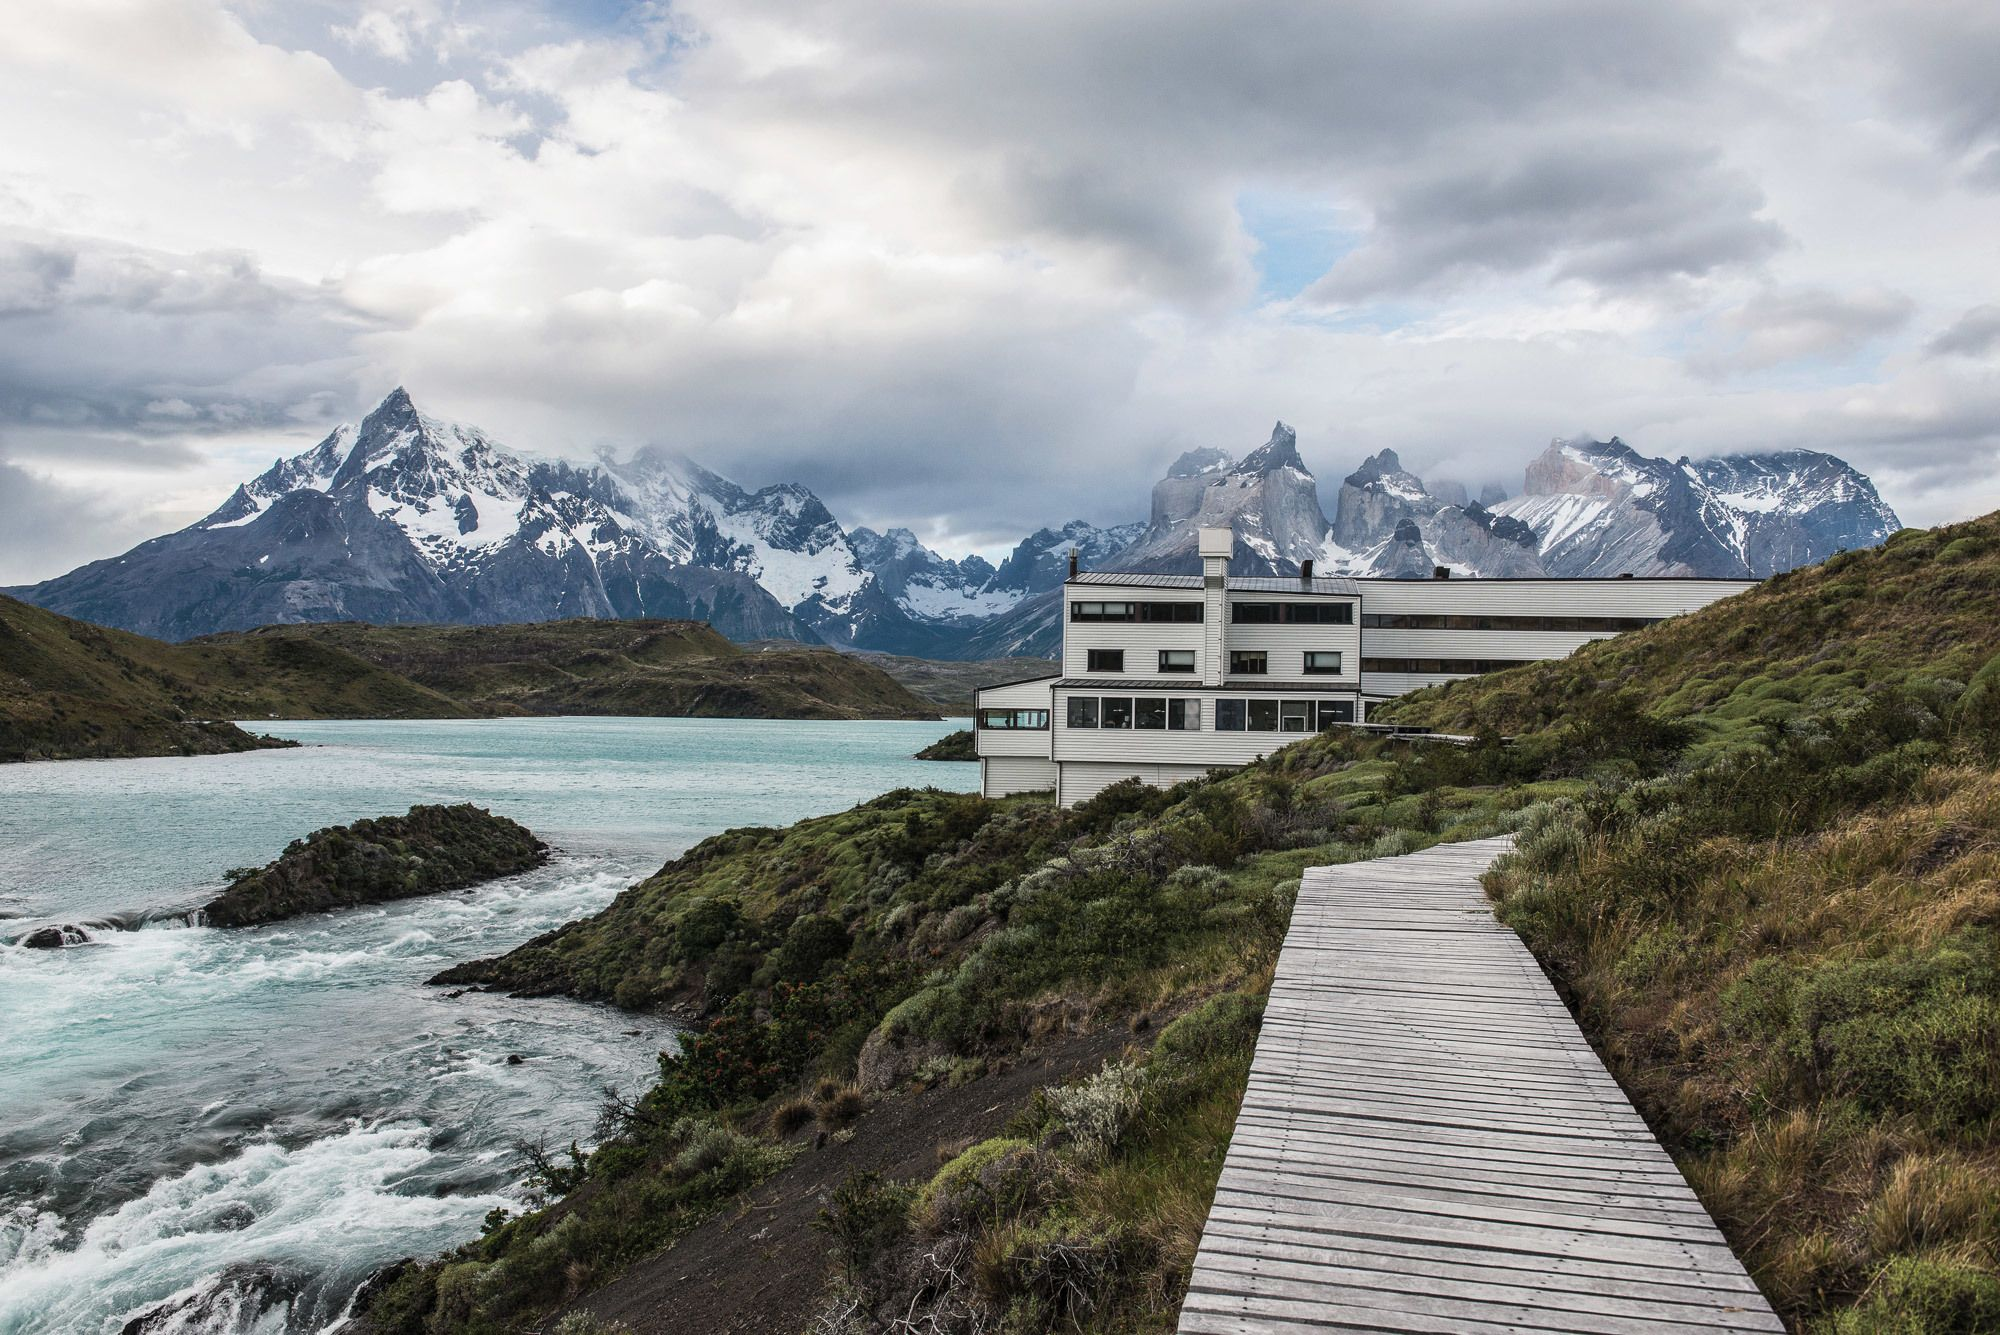 Photo 1 of 9 in Explora Patagonia Hotel – Your New Bucket